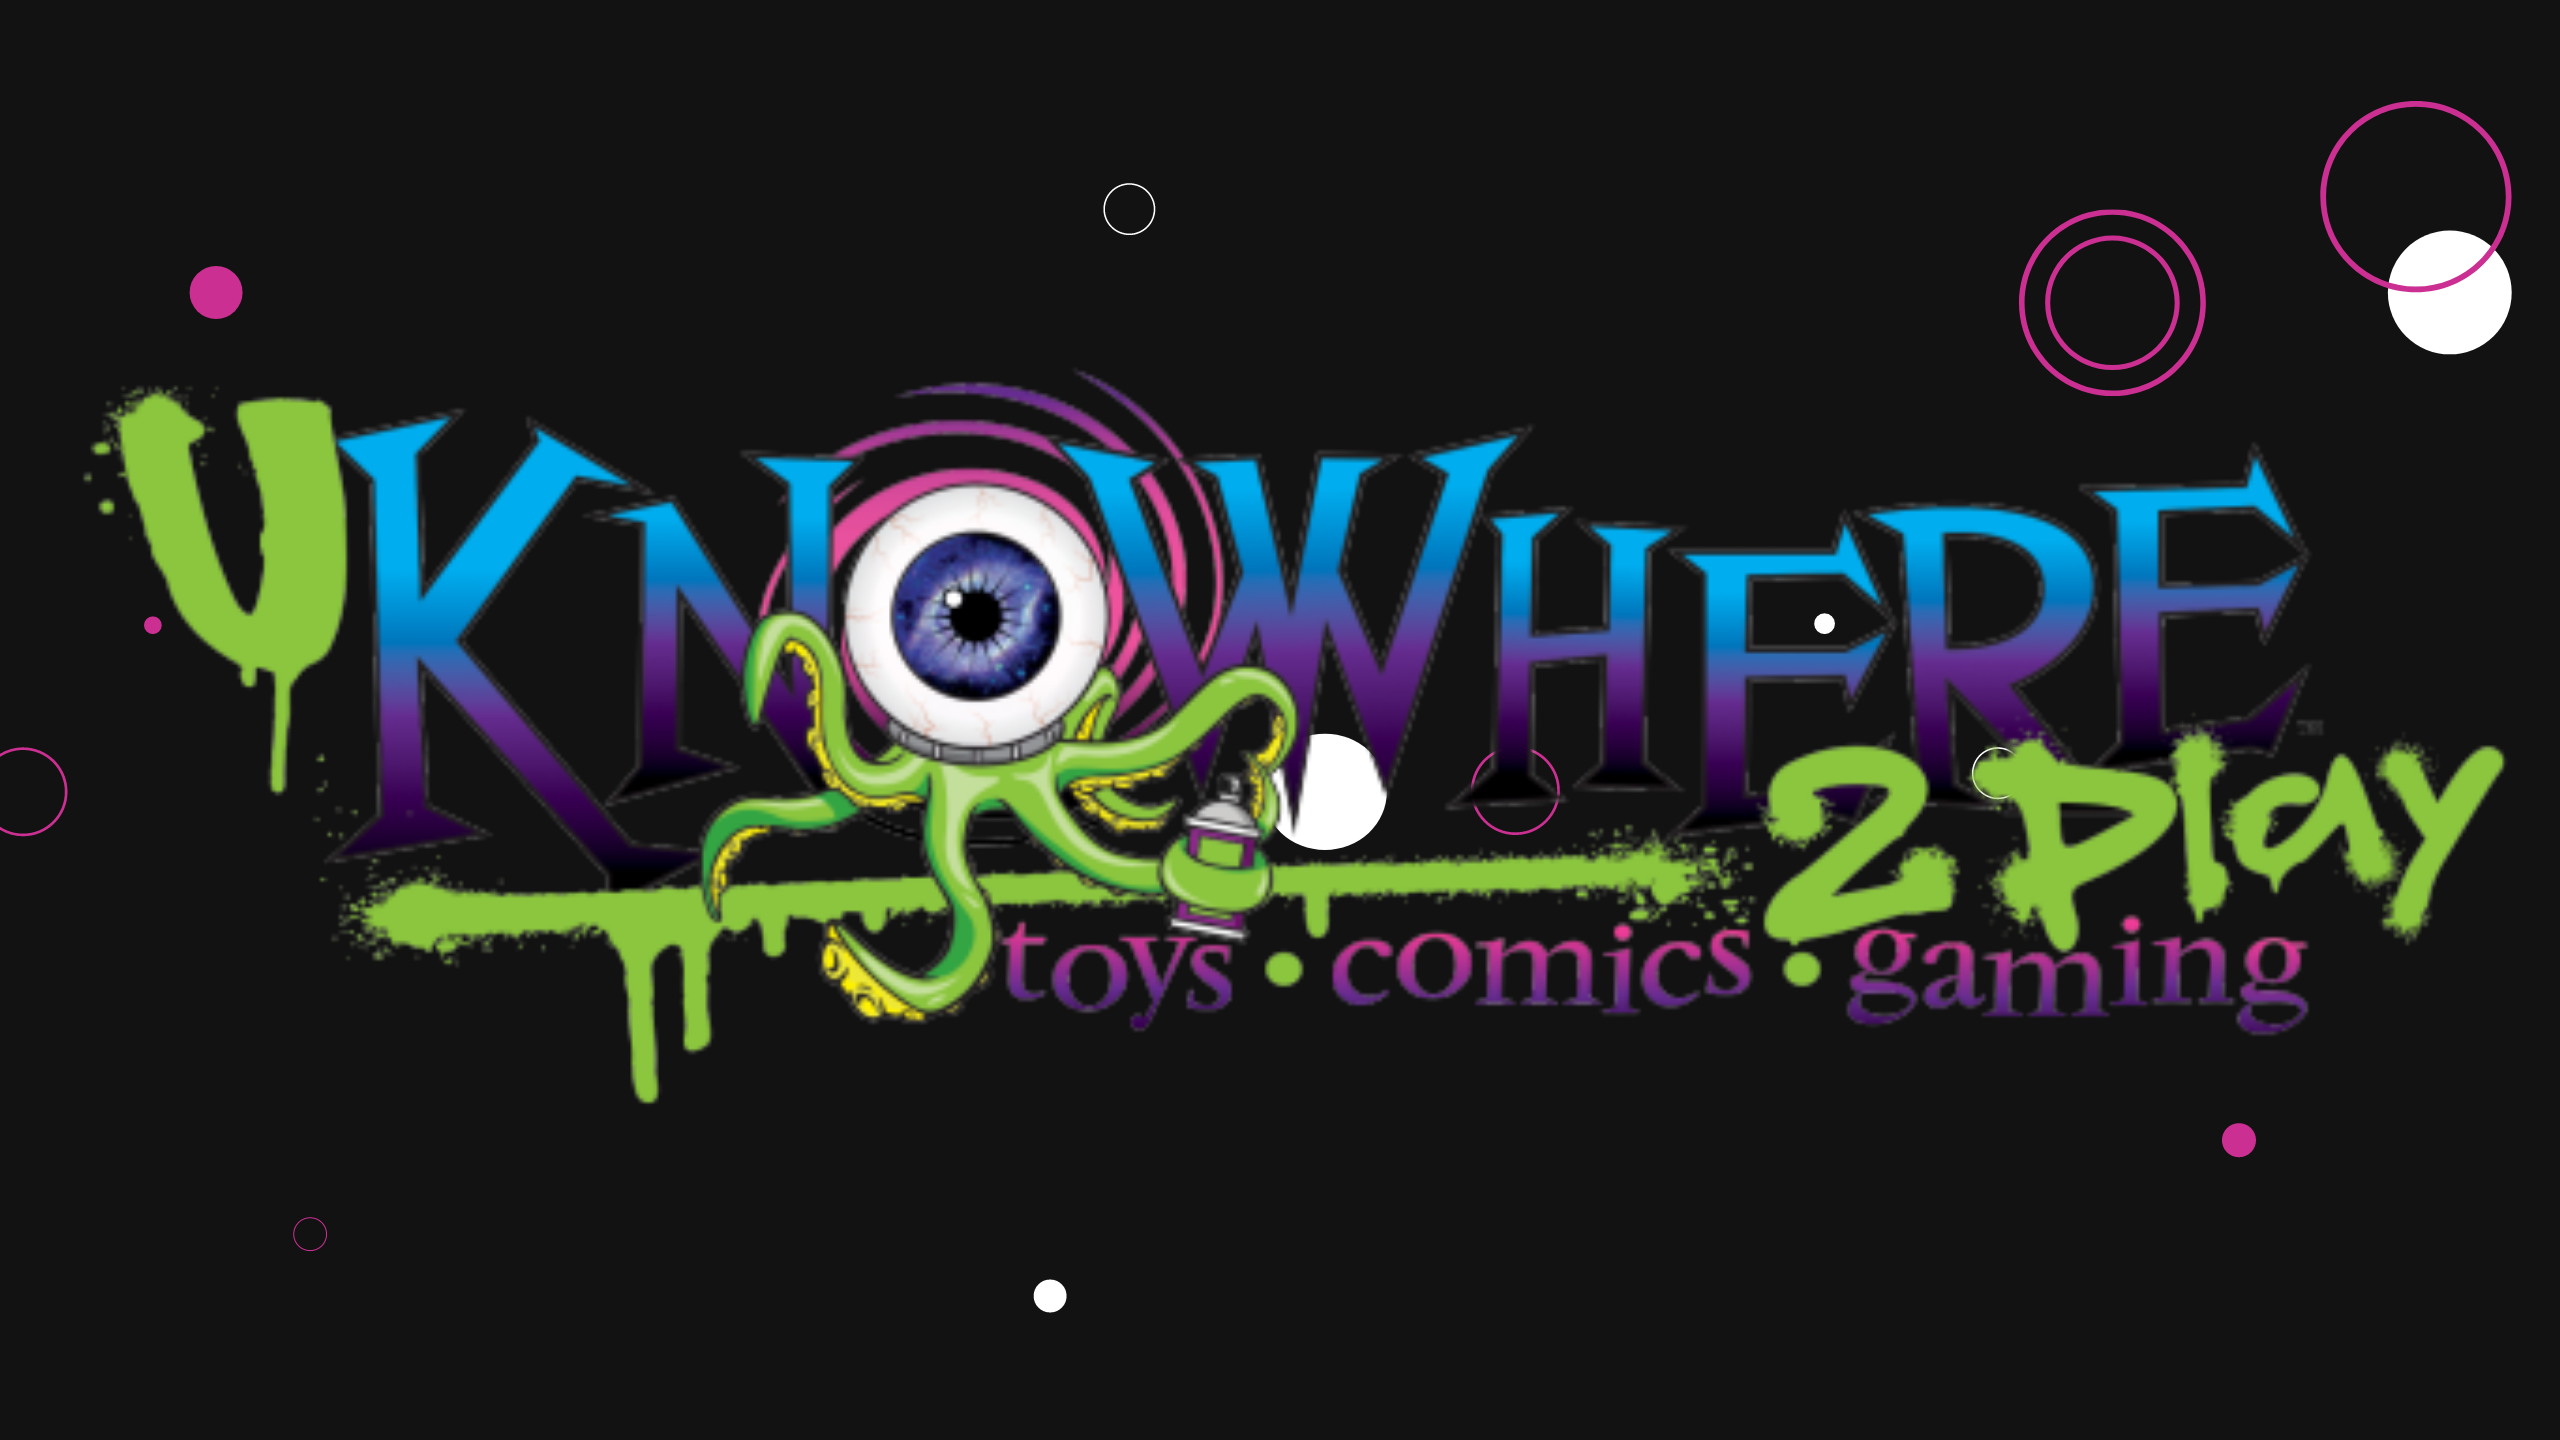 Knowhere banner